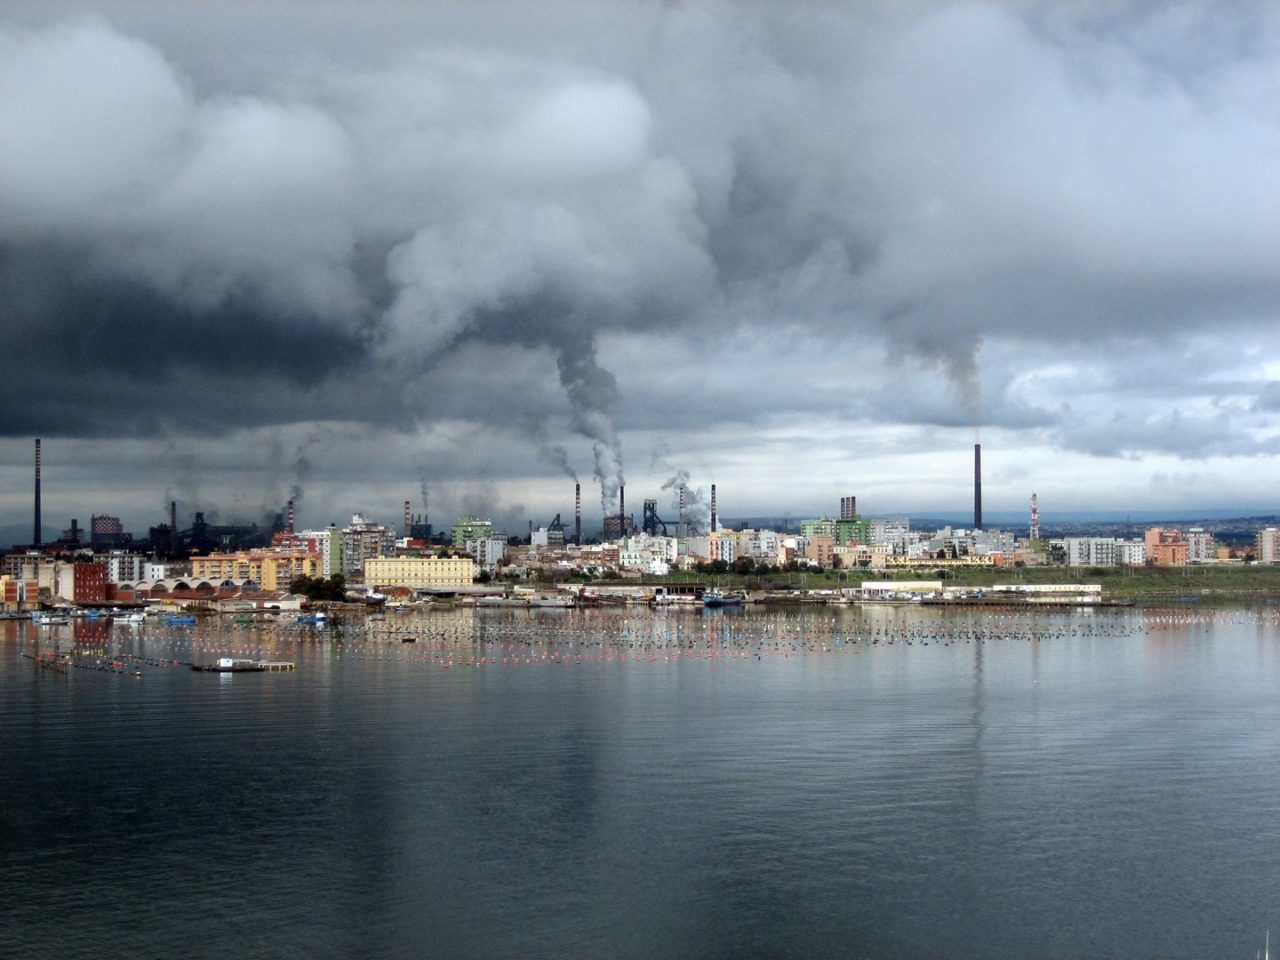 https://thesubmarine.it/wp-content/uploads/2019/11/ILVA_-_Unità_produttiva_di_Taranto_-_Italy_-_25_Dec._2007-1280x960.jpg